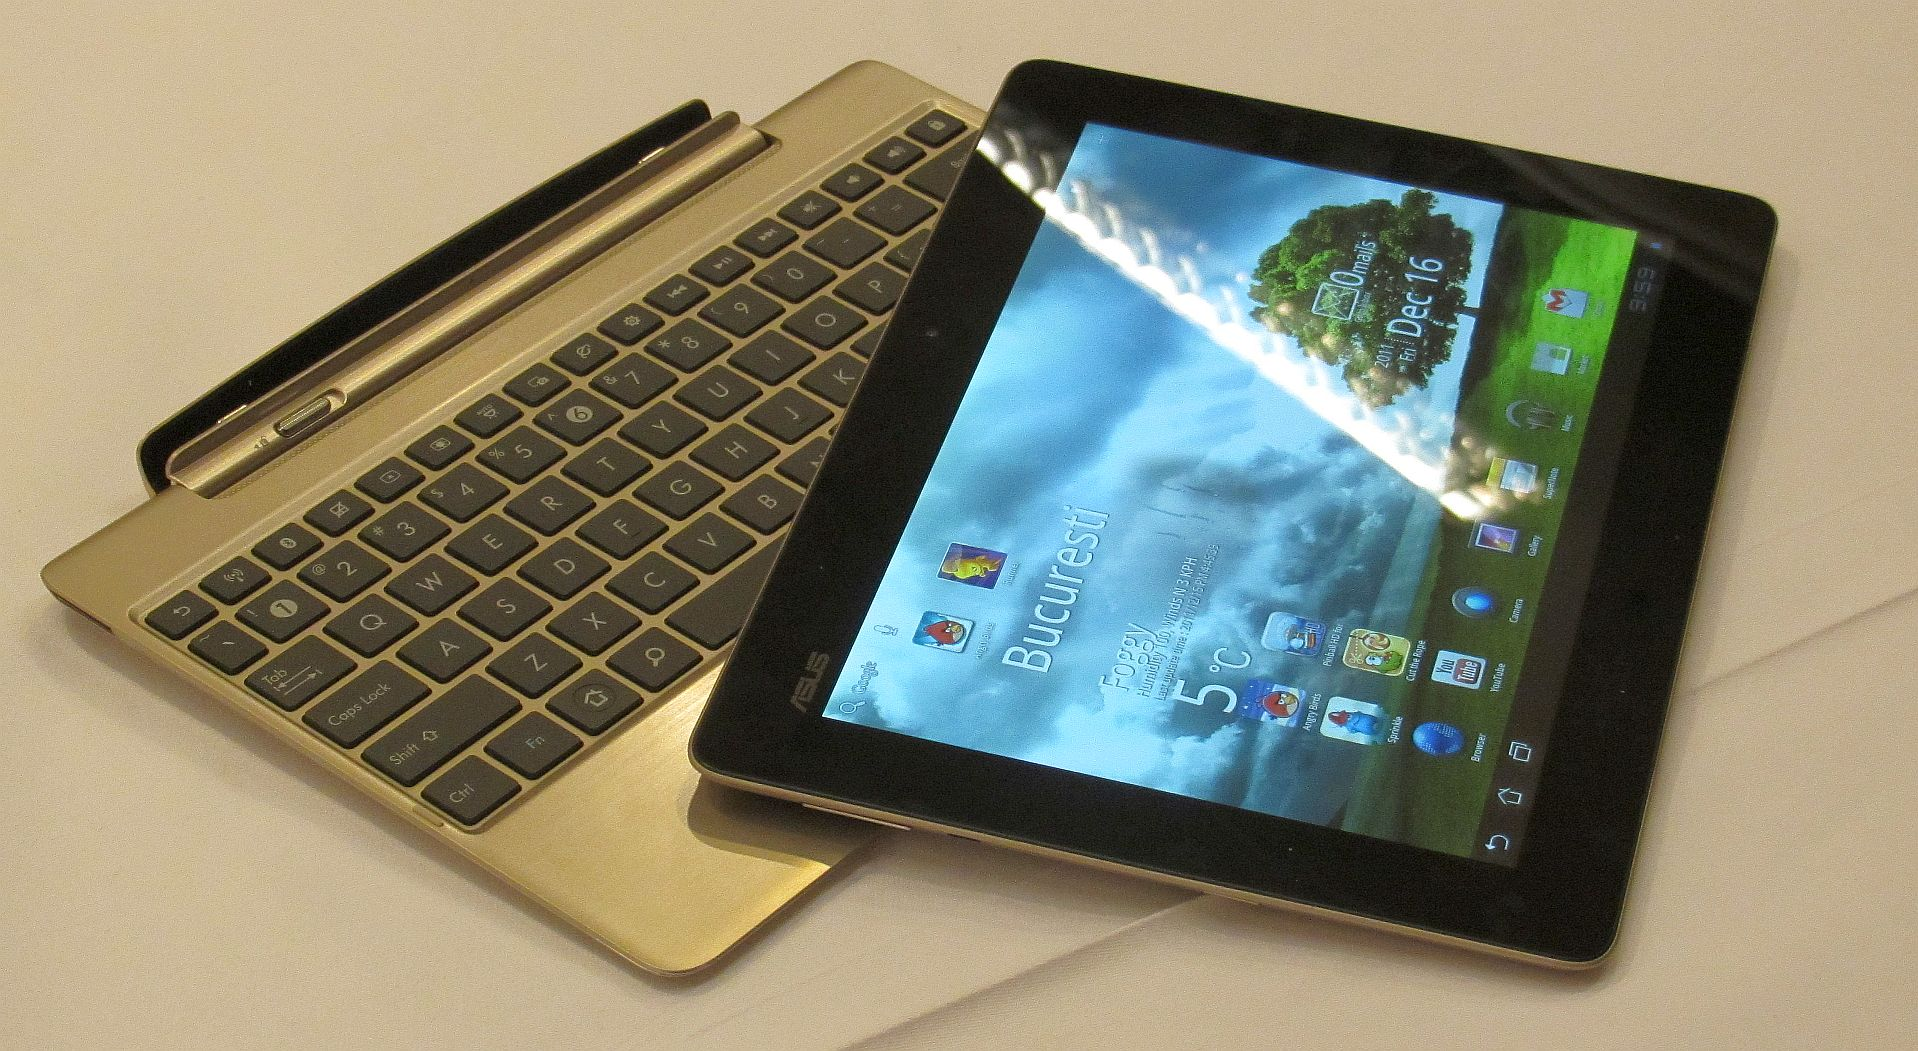 Asus Transformer Prime [Short Hands-on]